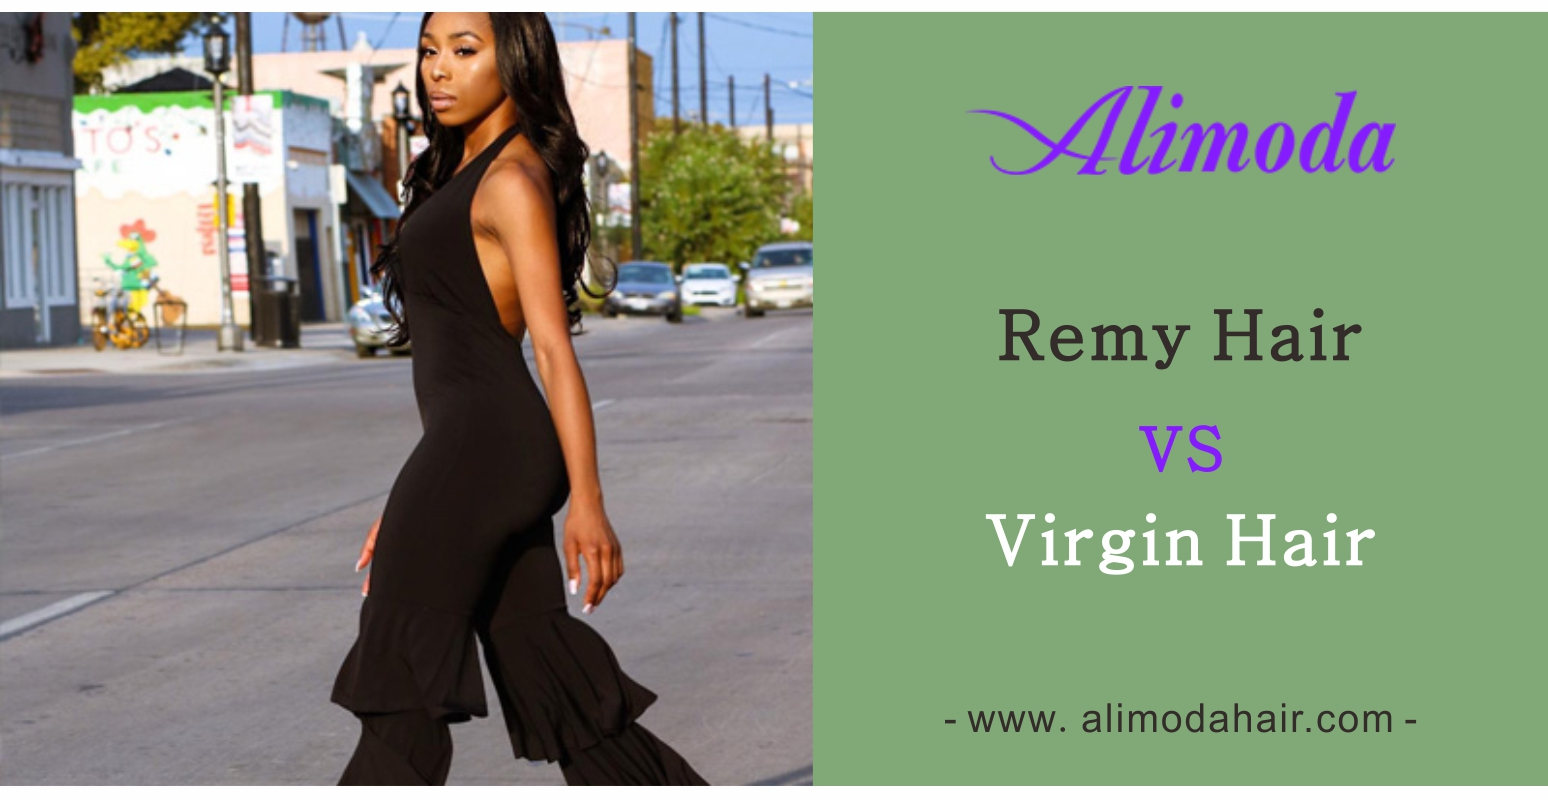 Which is the best, remy hair or virgin hair?